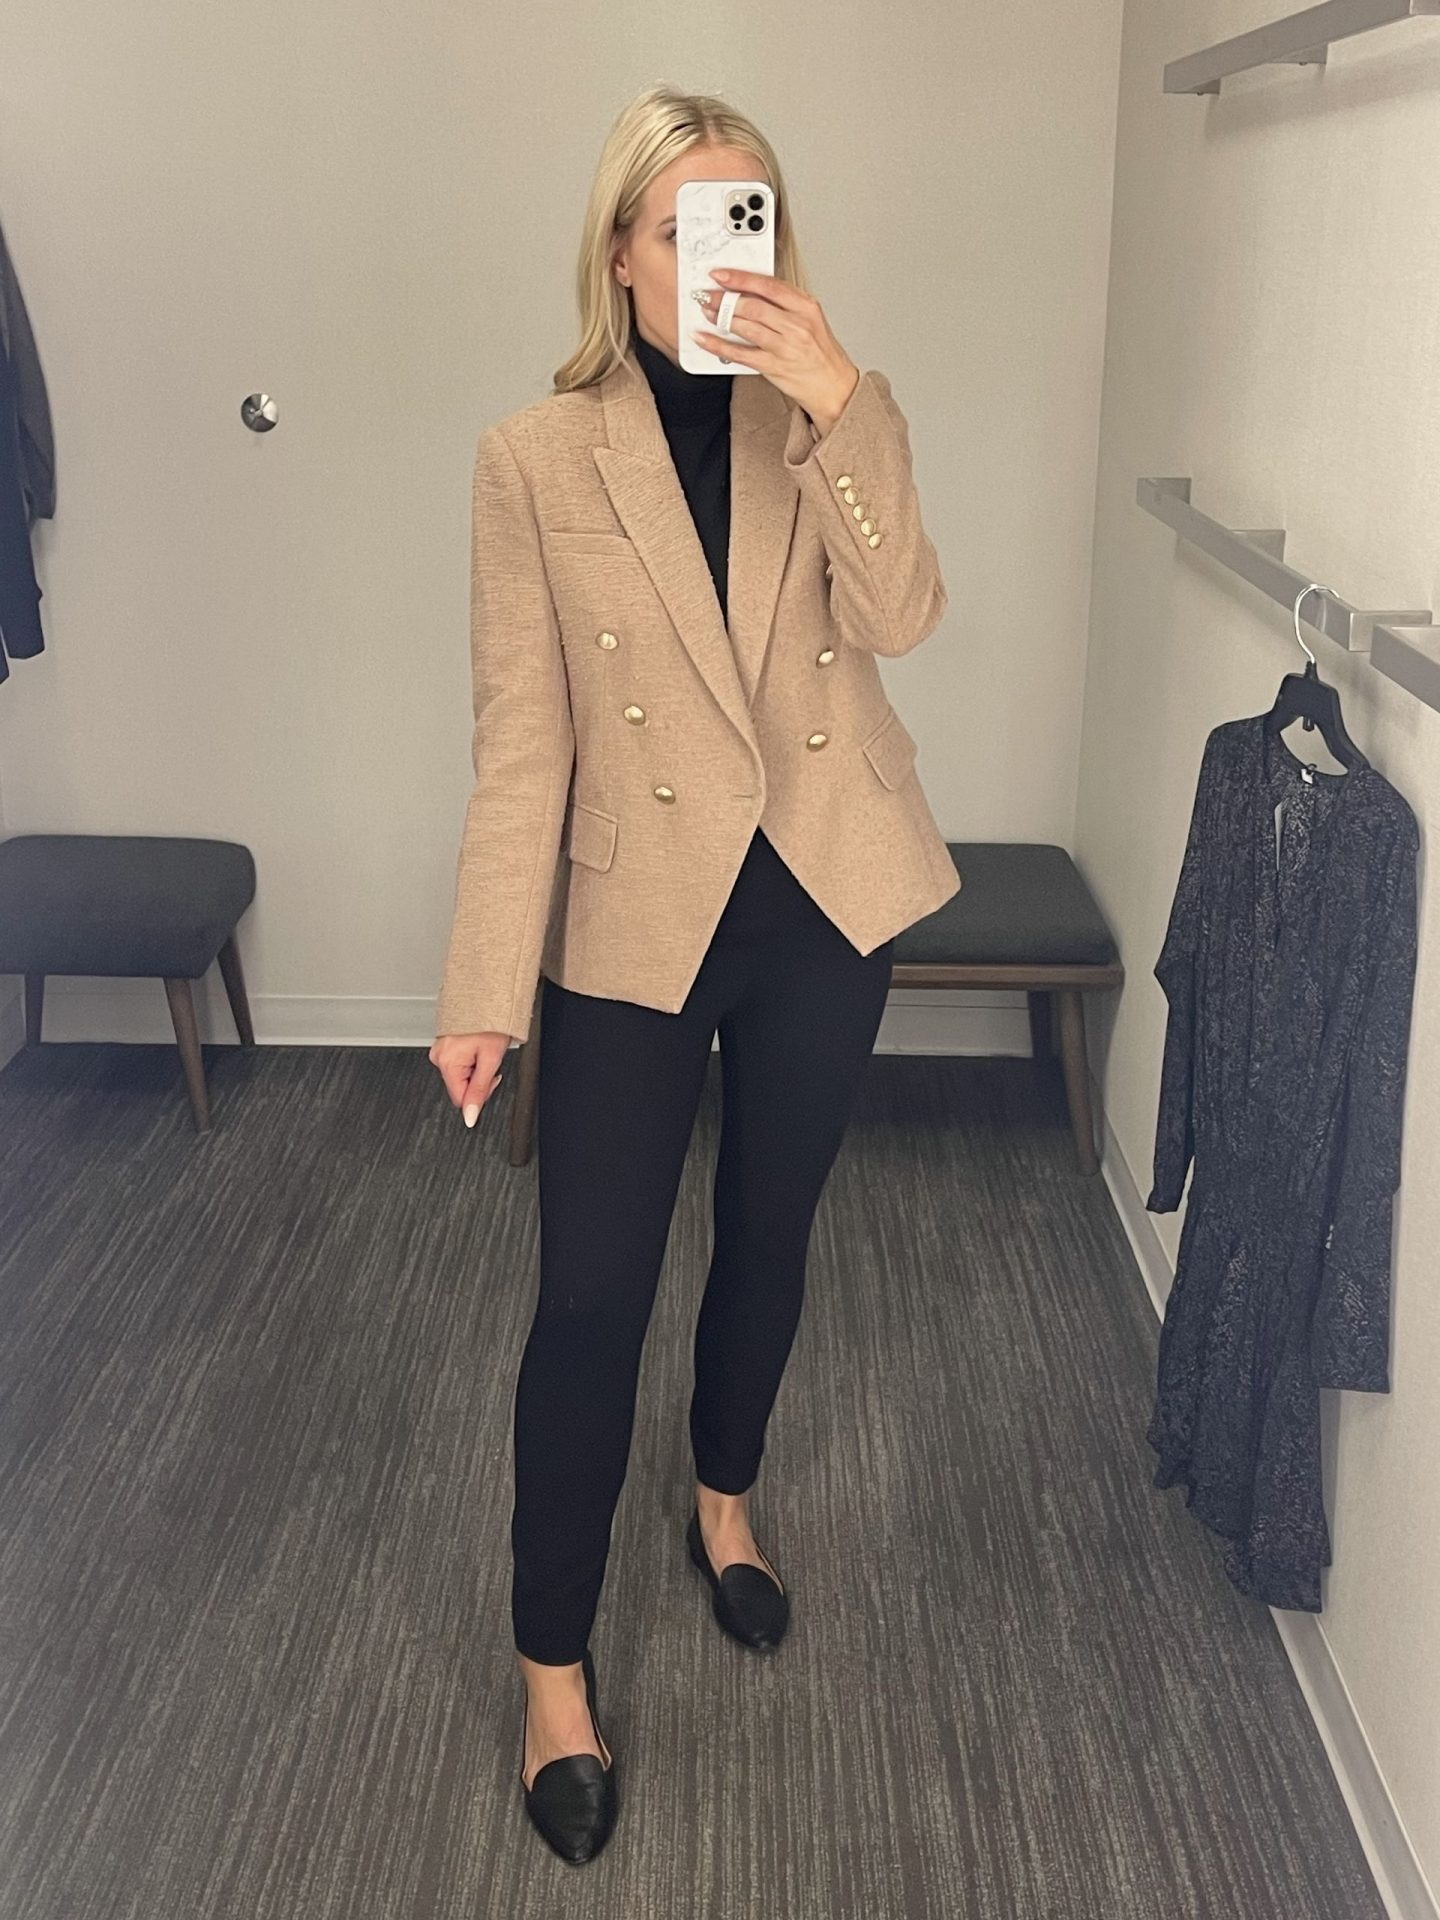 legallee blonde wearing l'agence blazer Fitting Room Review - Nordstrom Anniversary Sale